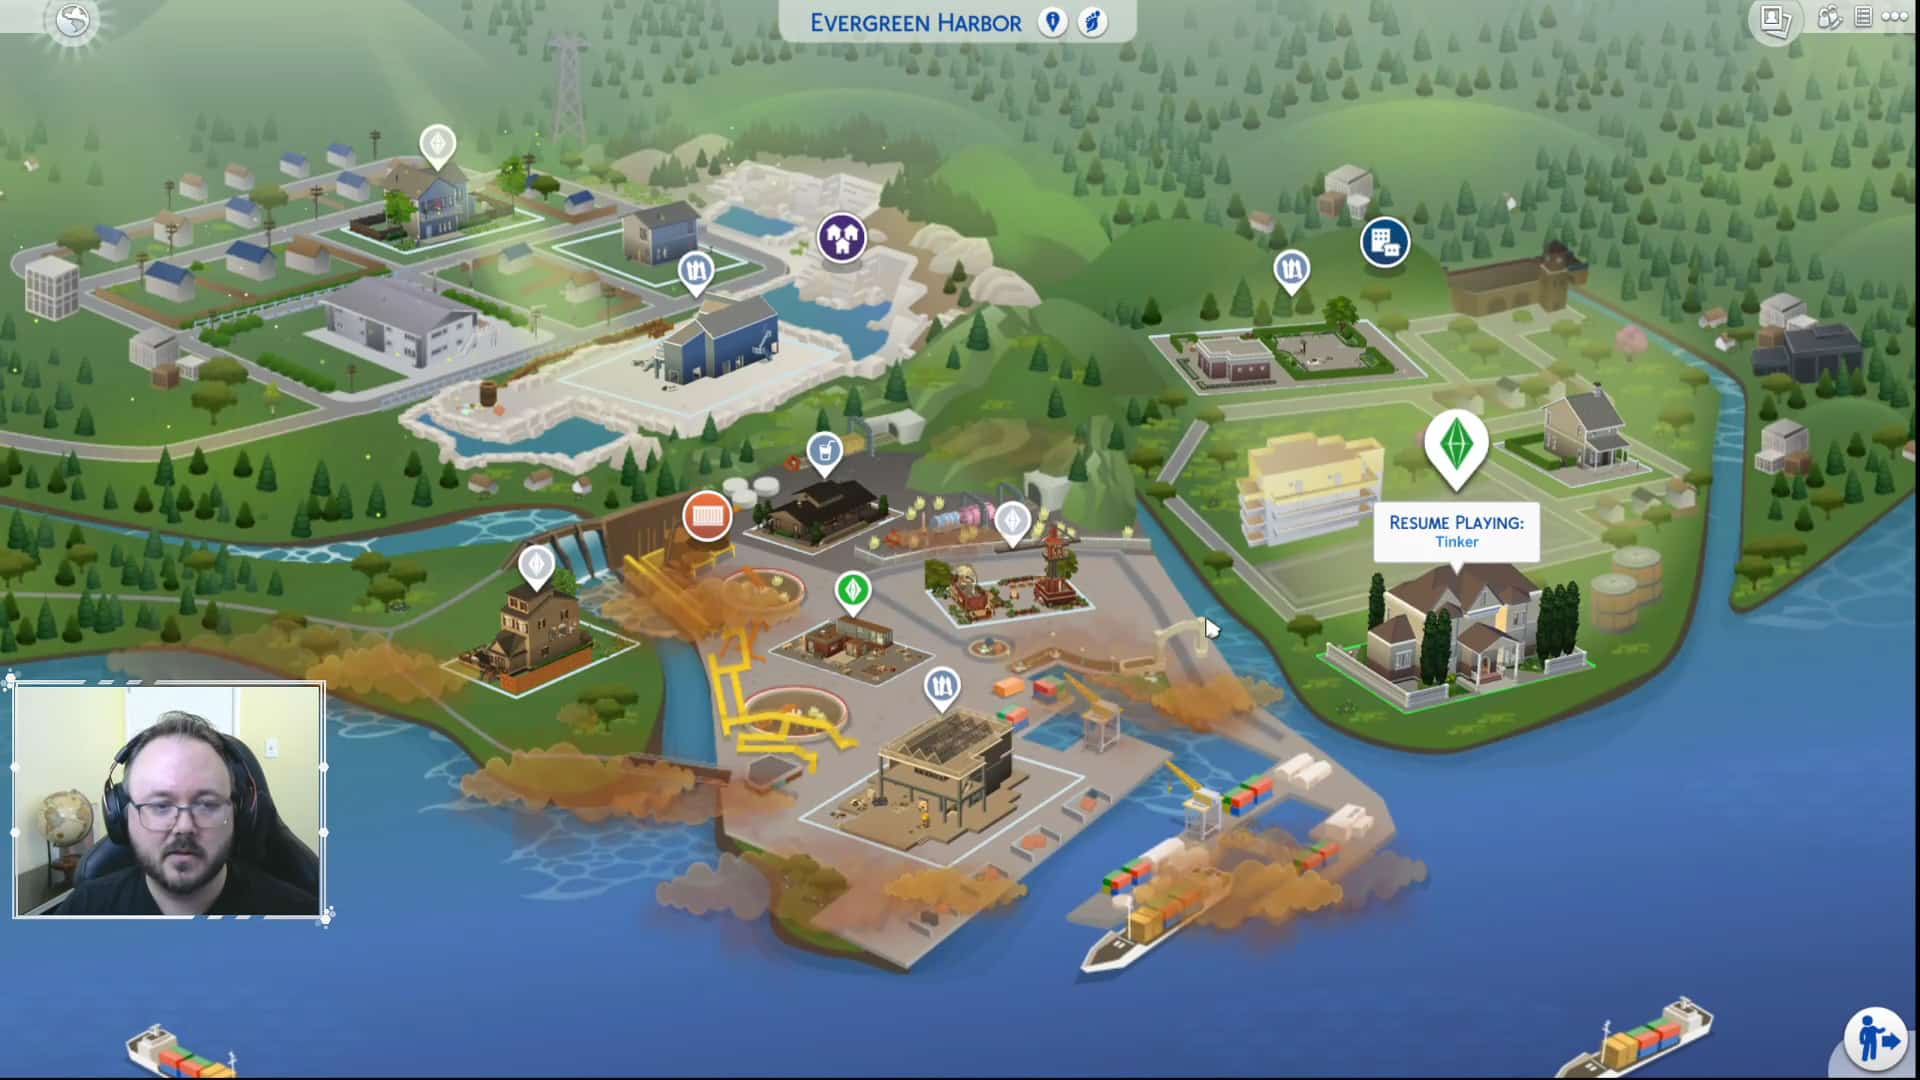 The Sims 4 Eco Lifestyle First Look At The Evergreen Harbor World Map